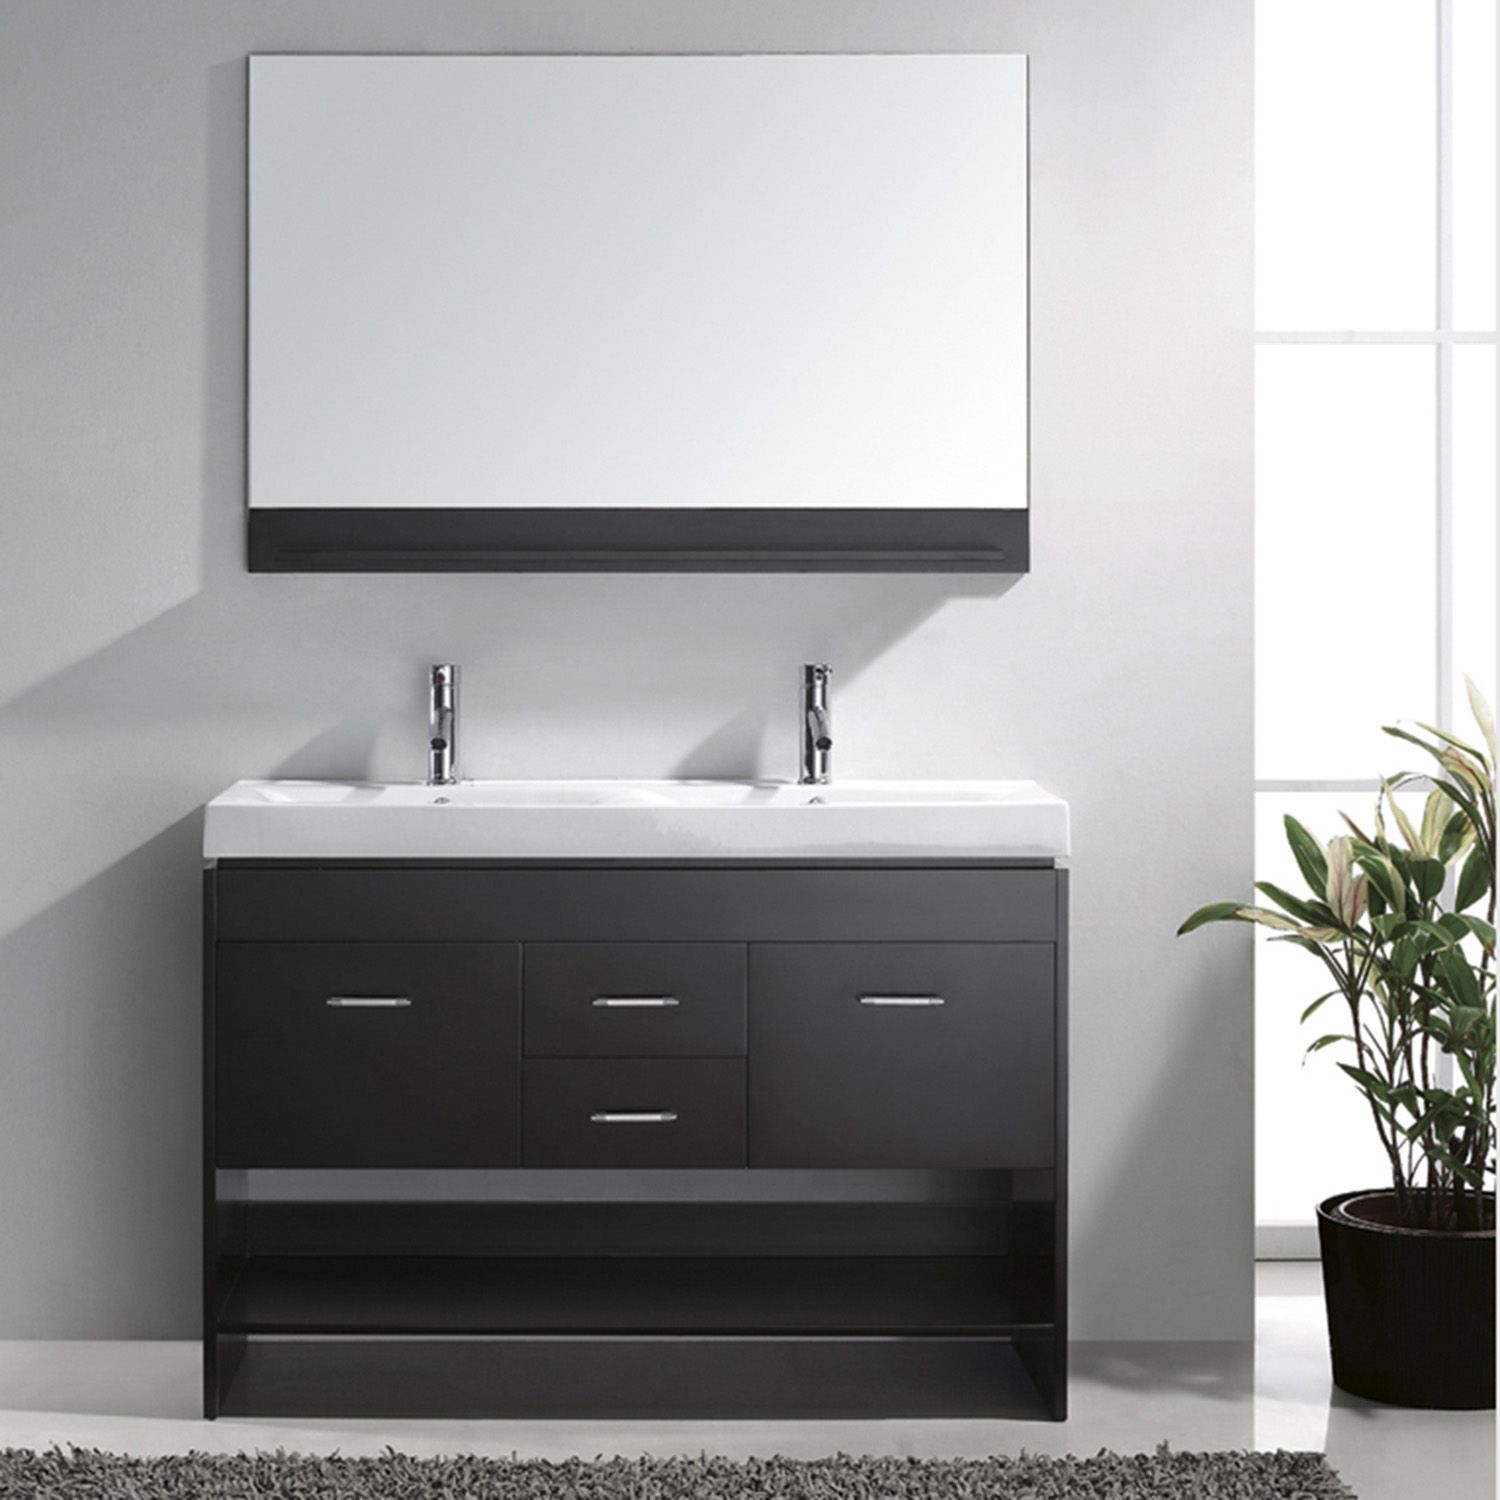 Should You Buy A Cheap Bathroom Vanity Or High Quality One